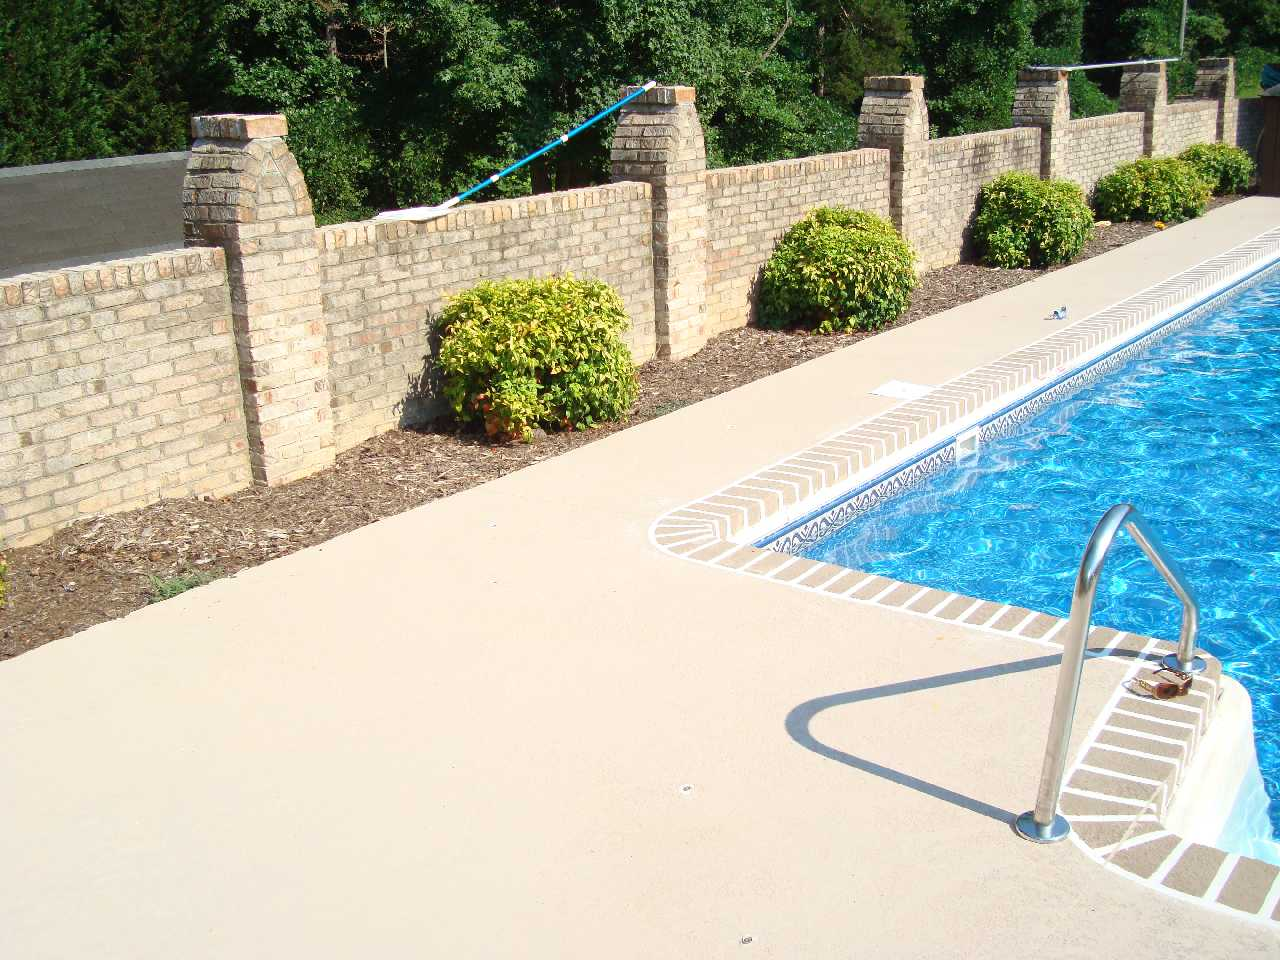 Atlantic coast concrete 2 500 square foot pool deck for Average square footage of a pool